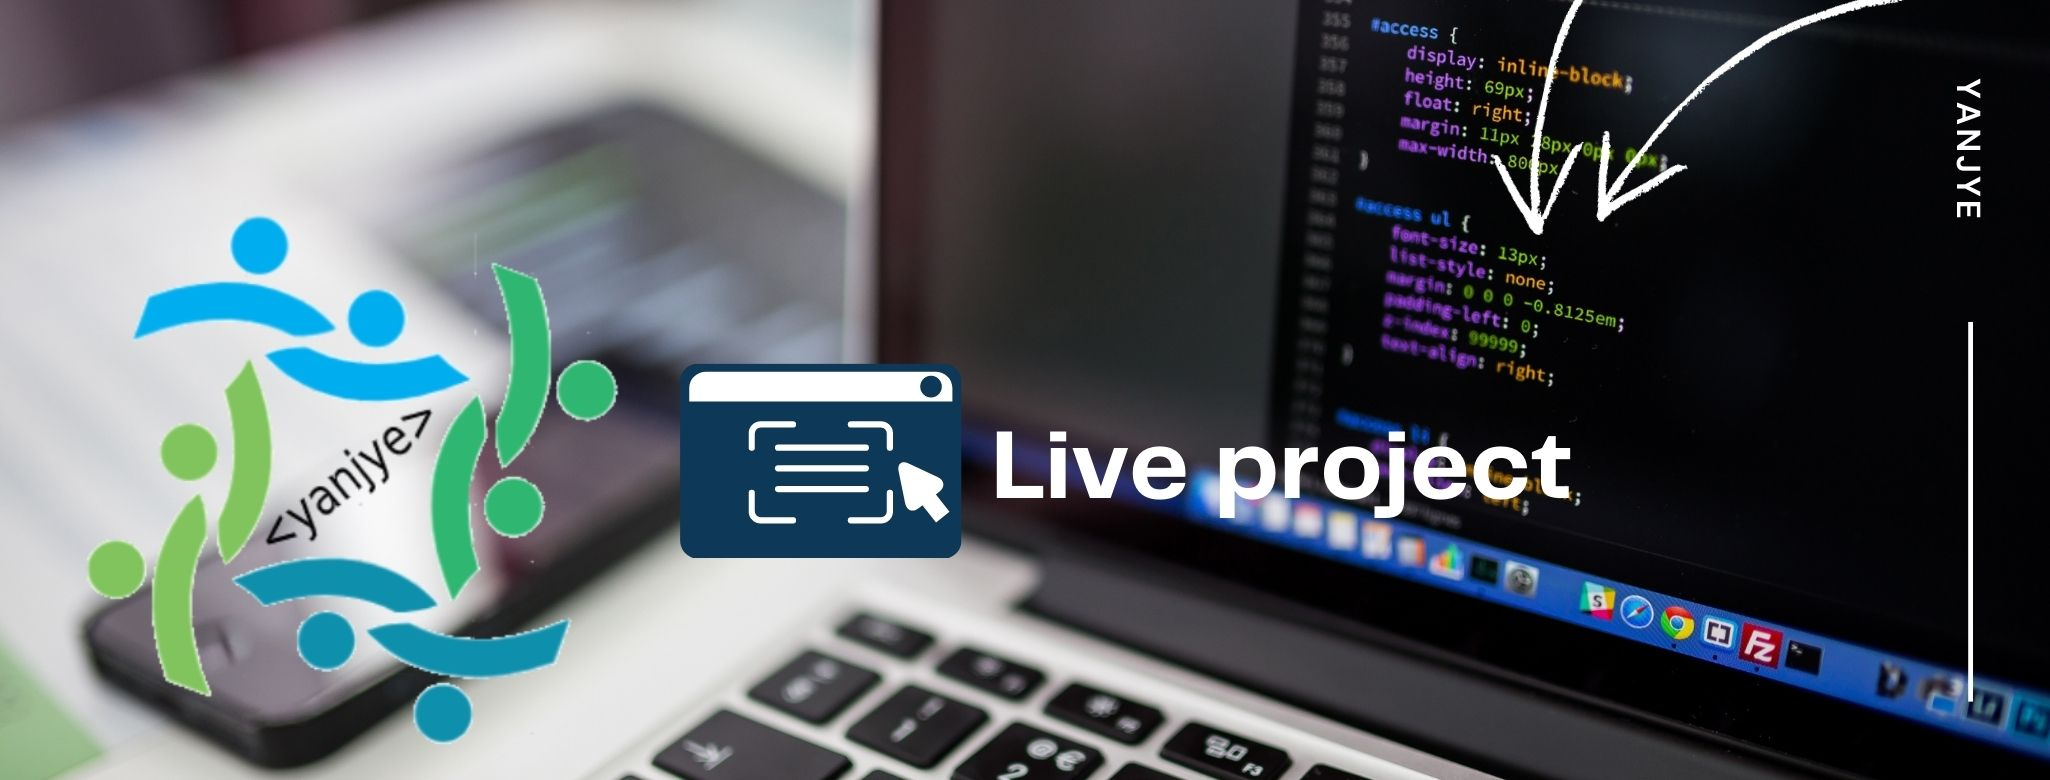 Live project